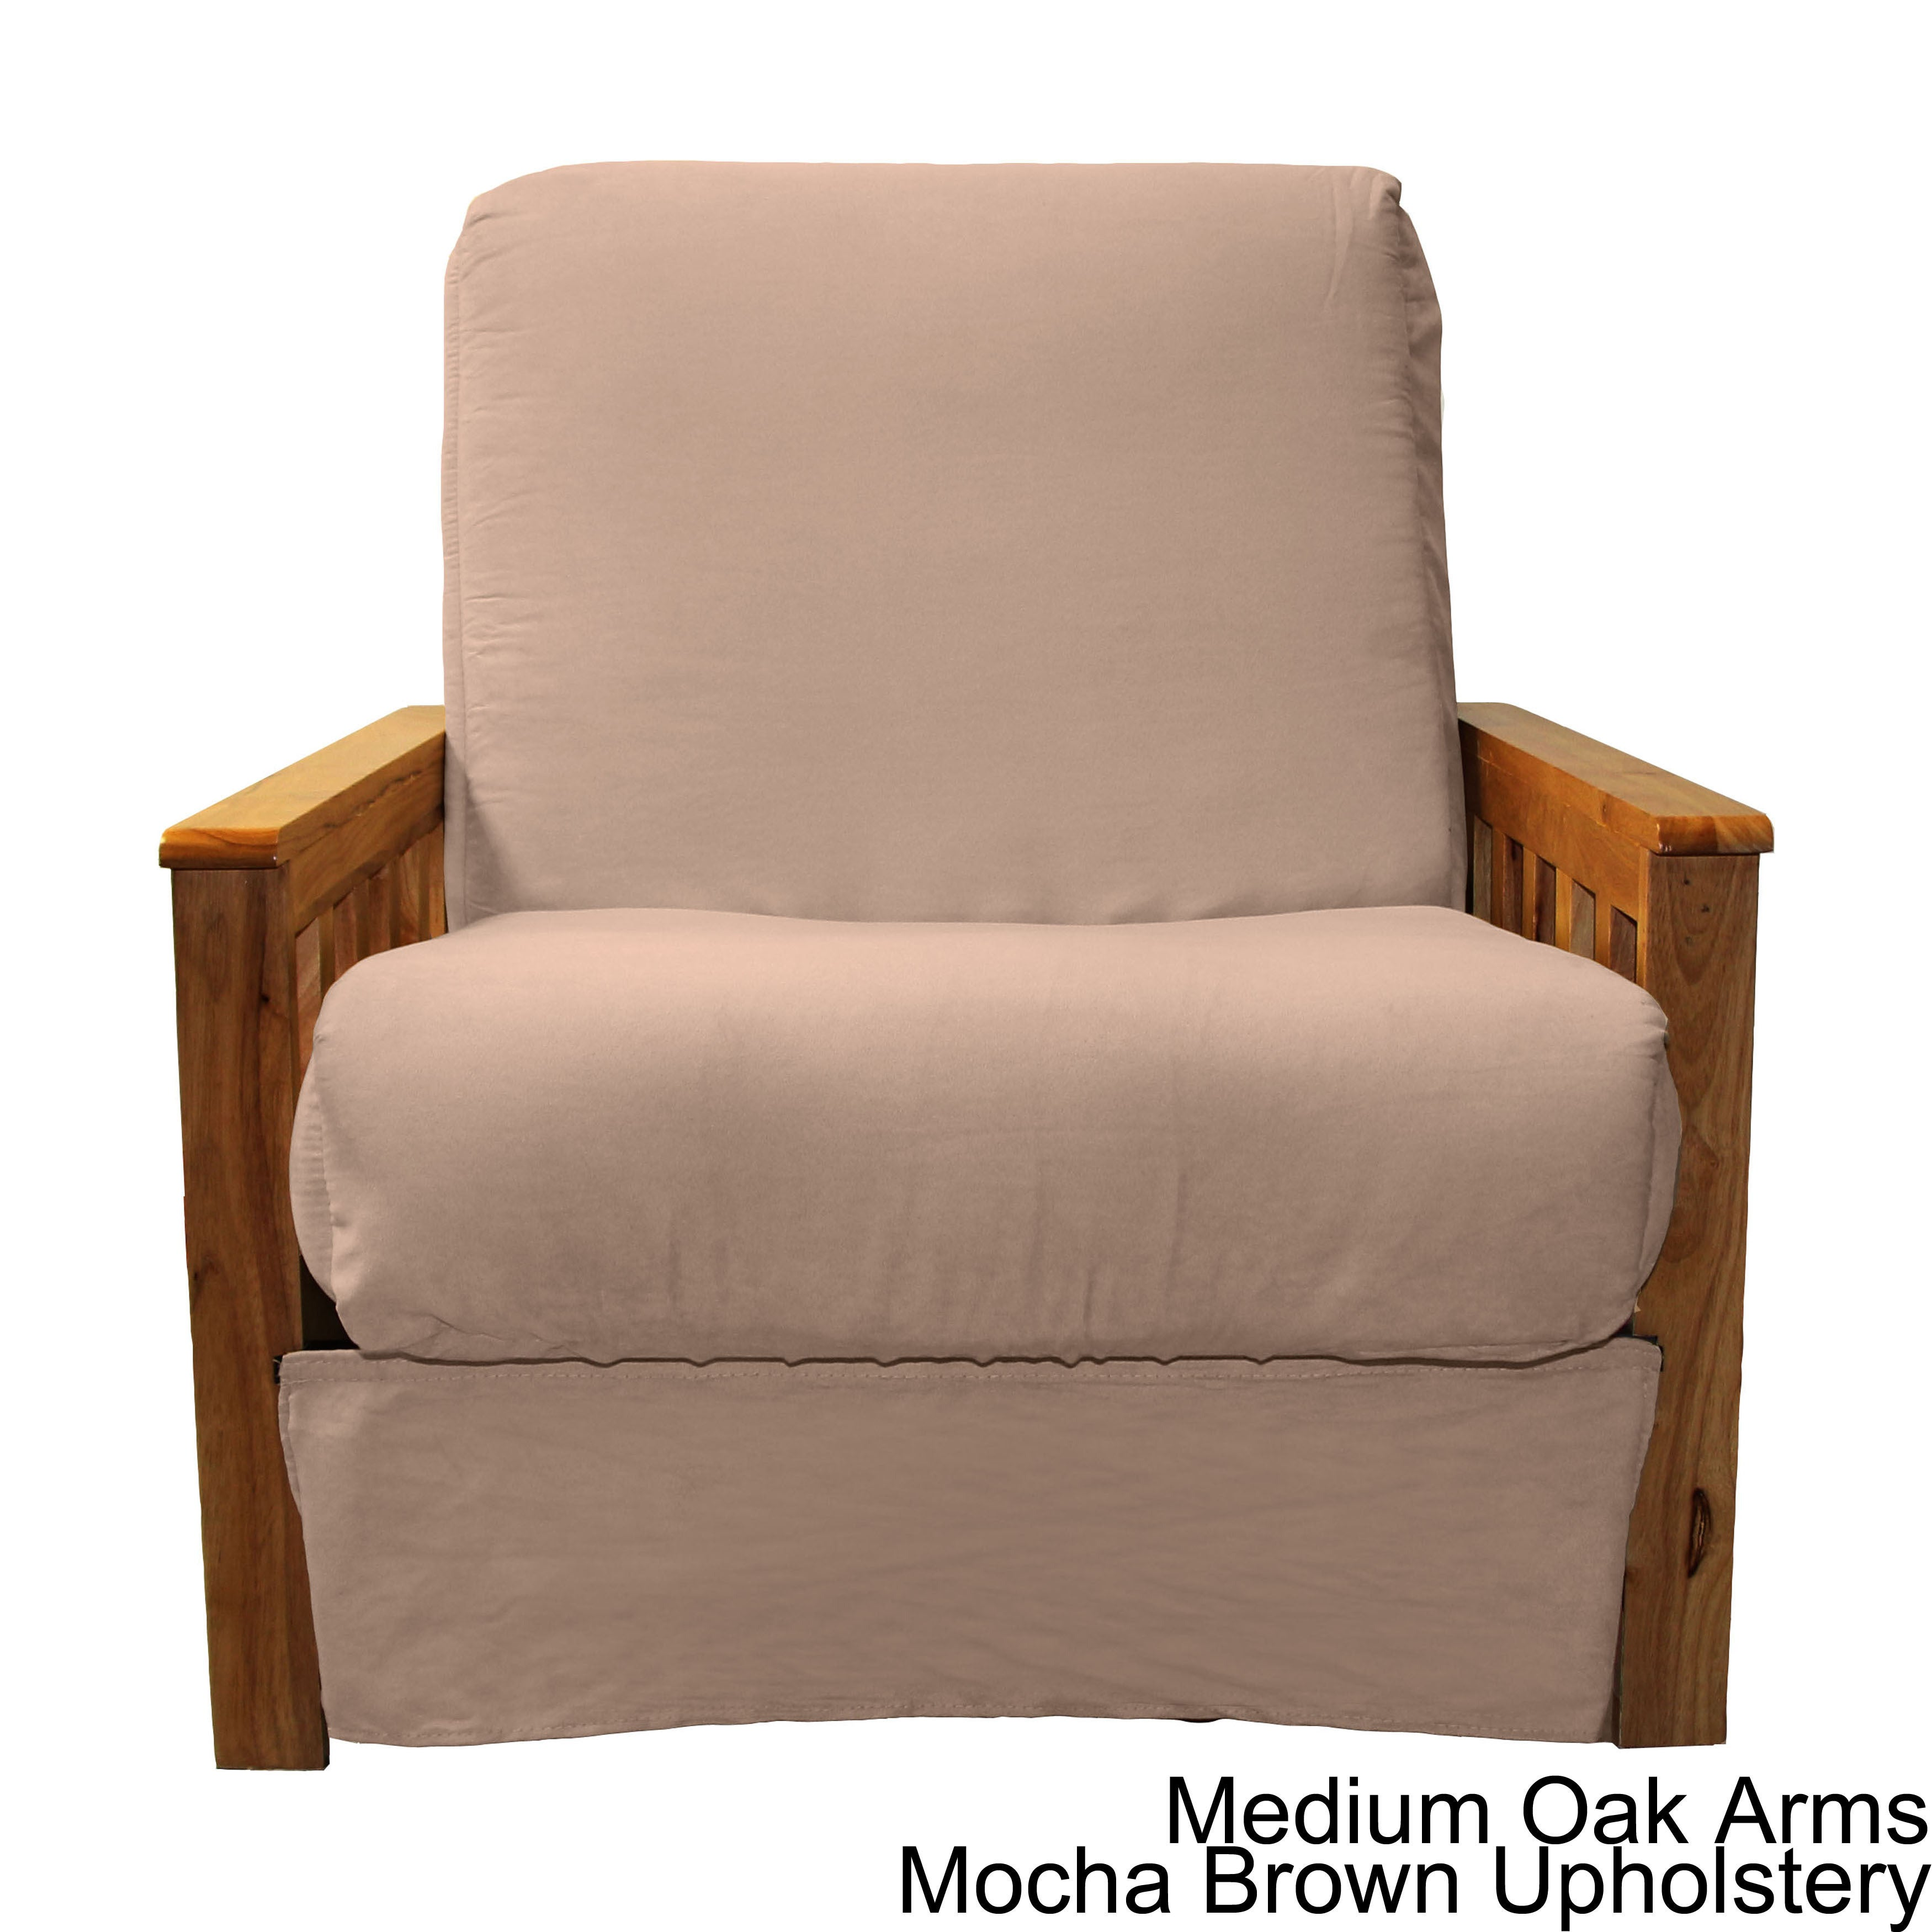 Shop copper grove shenandoah mission style pillow top futon chair on sale free shipping today overstock com 20469476